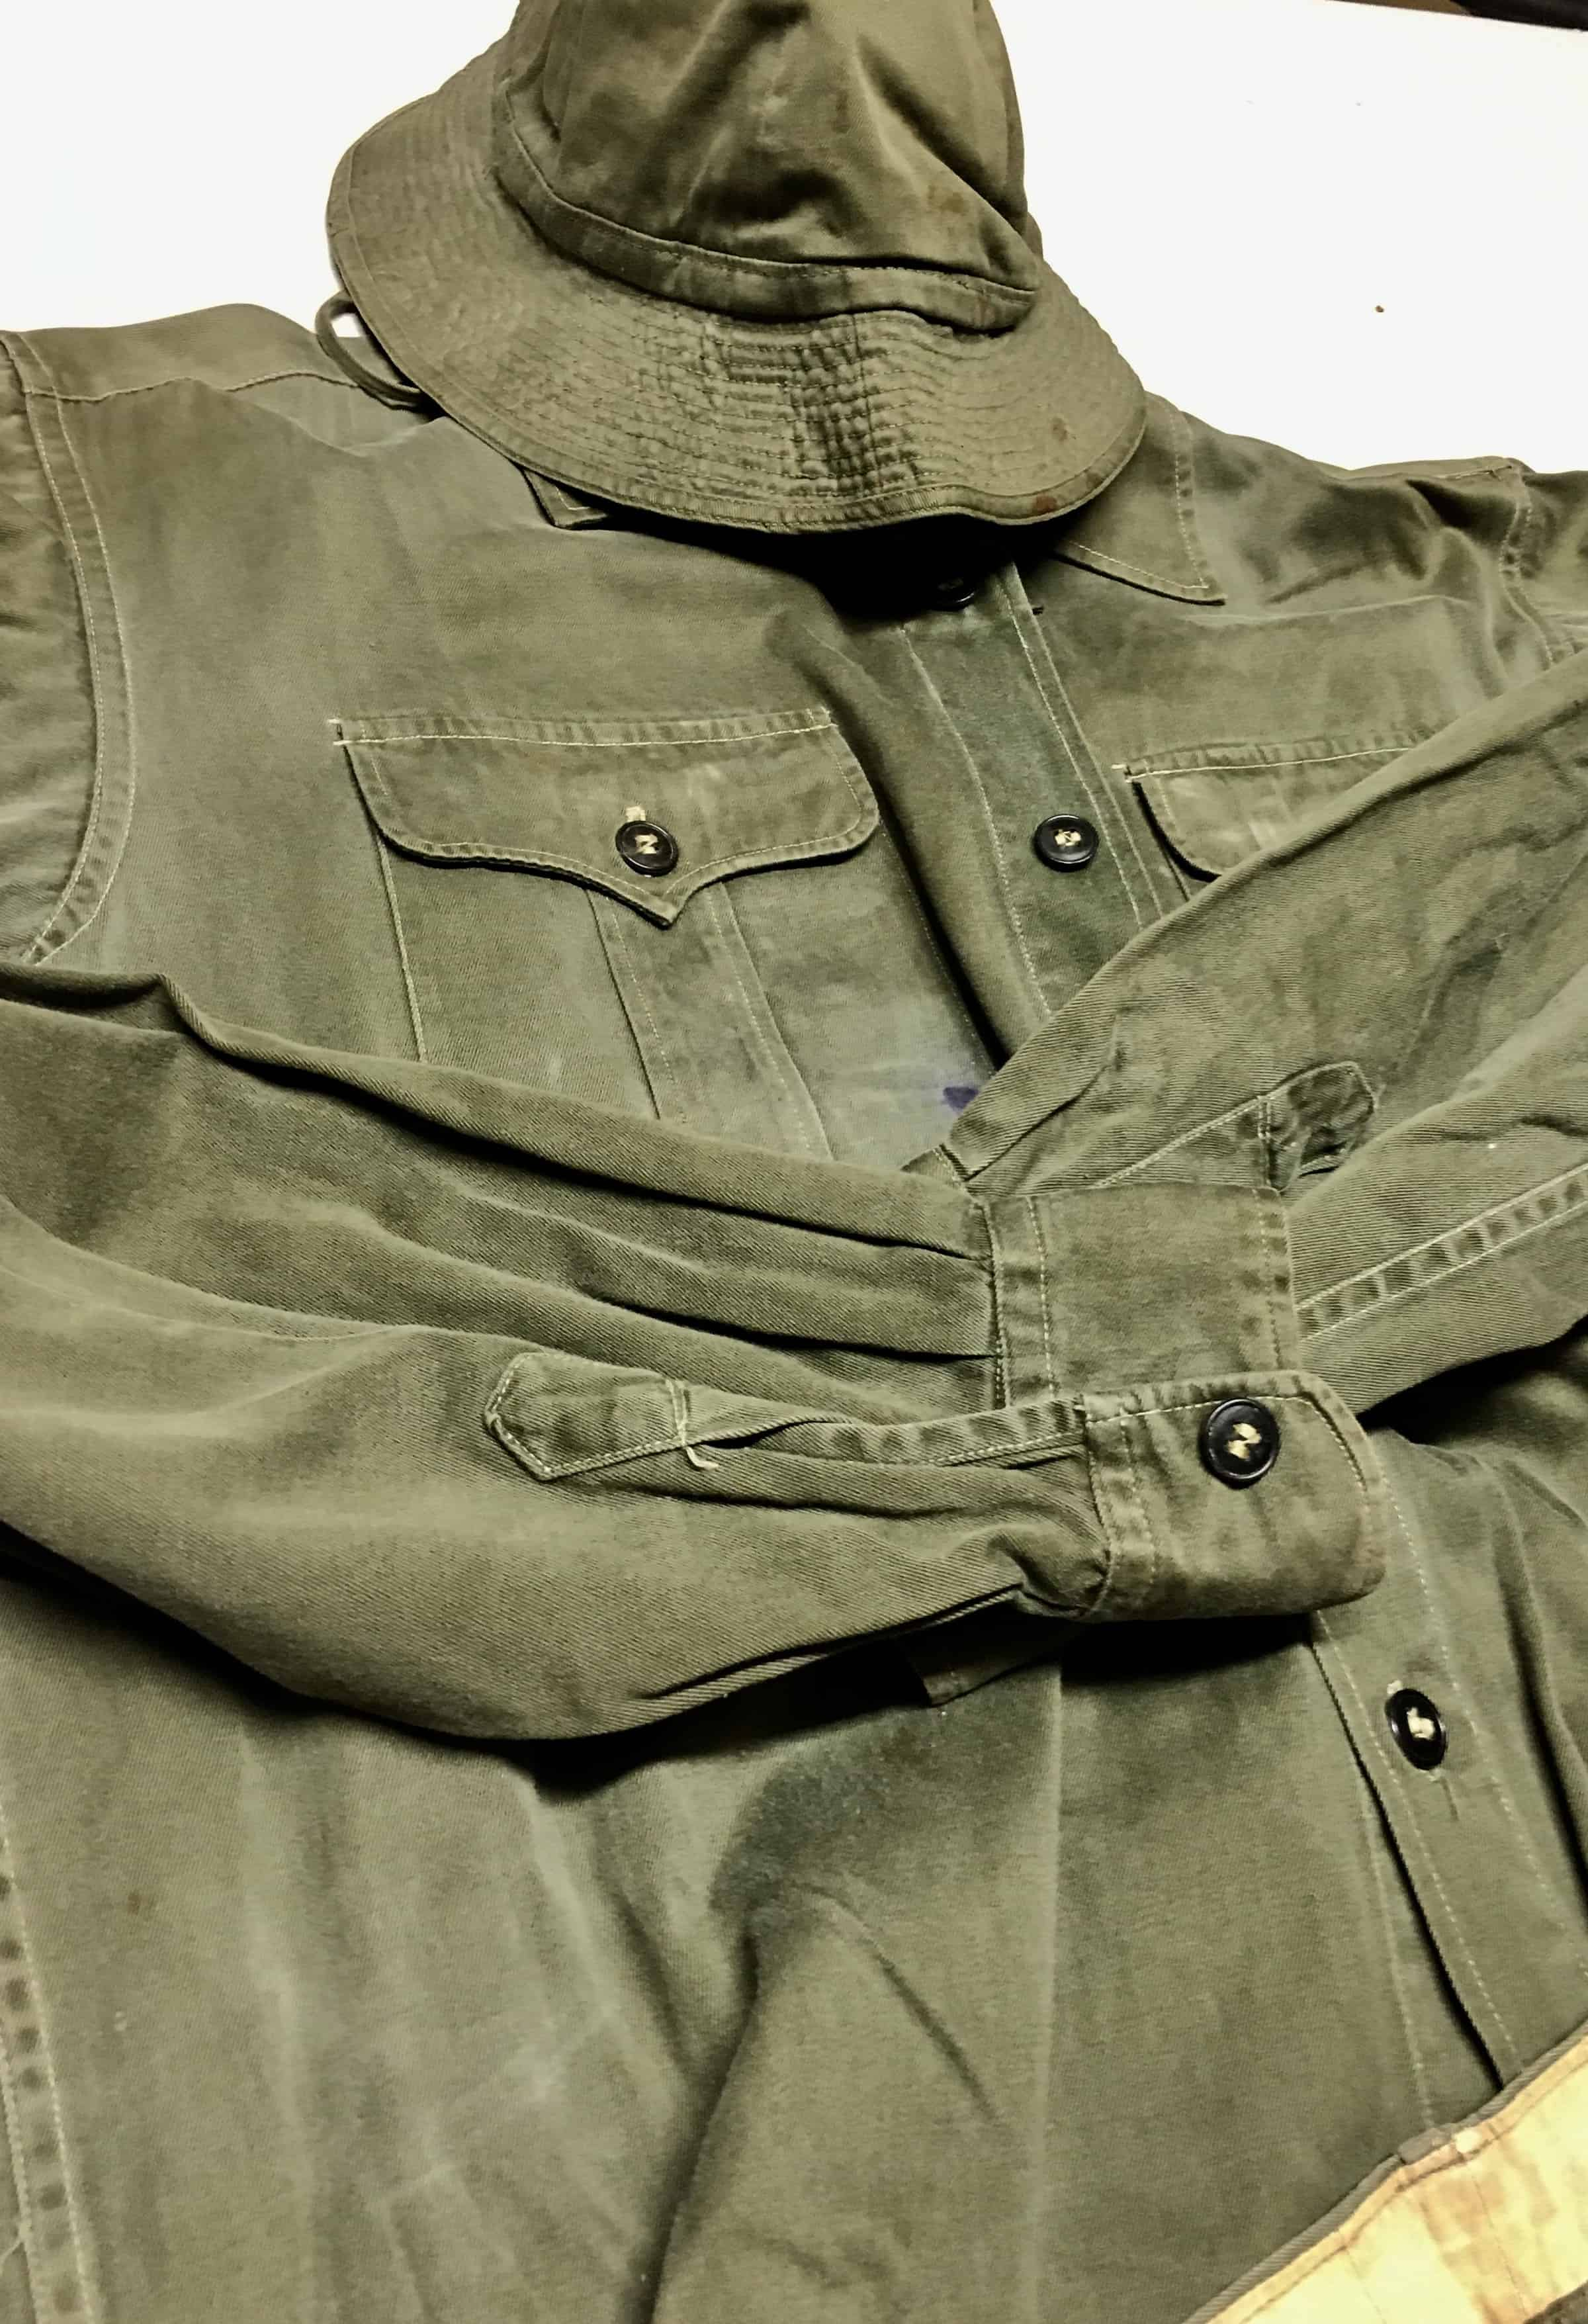 North Vietnamese Army Enlisted Green Uniform With Matching